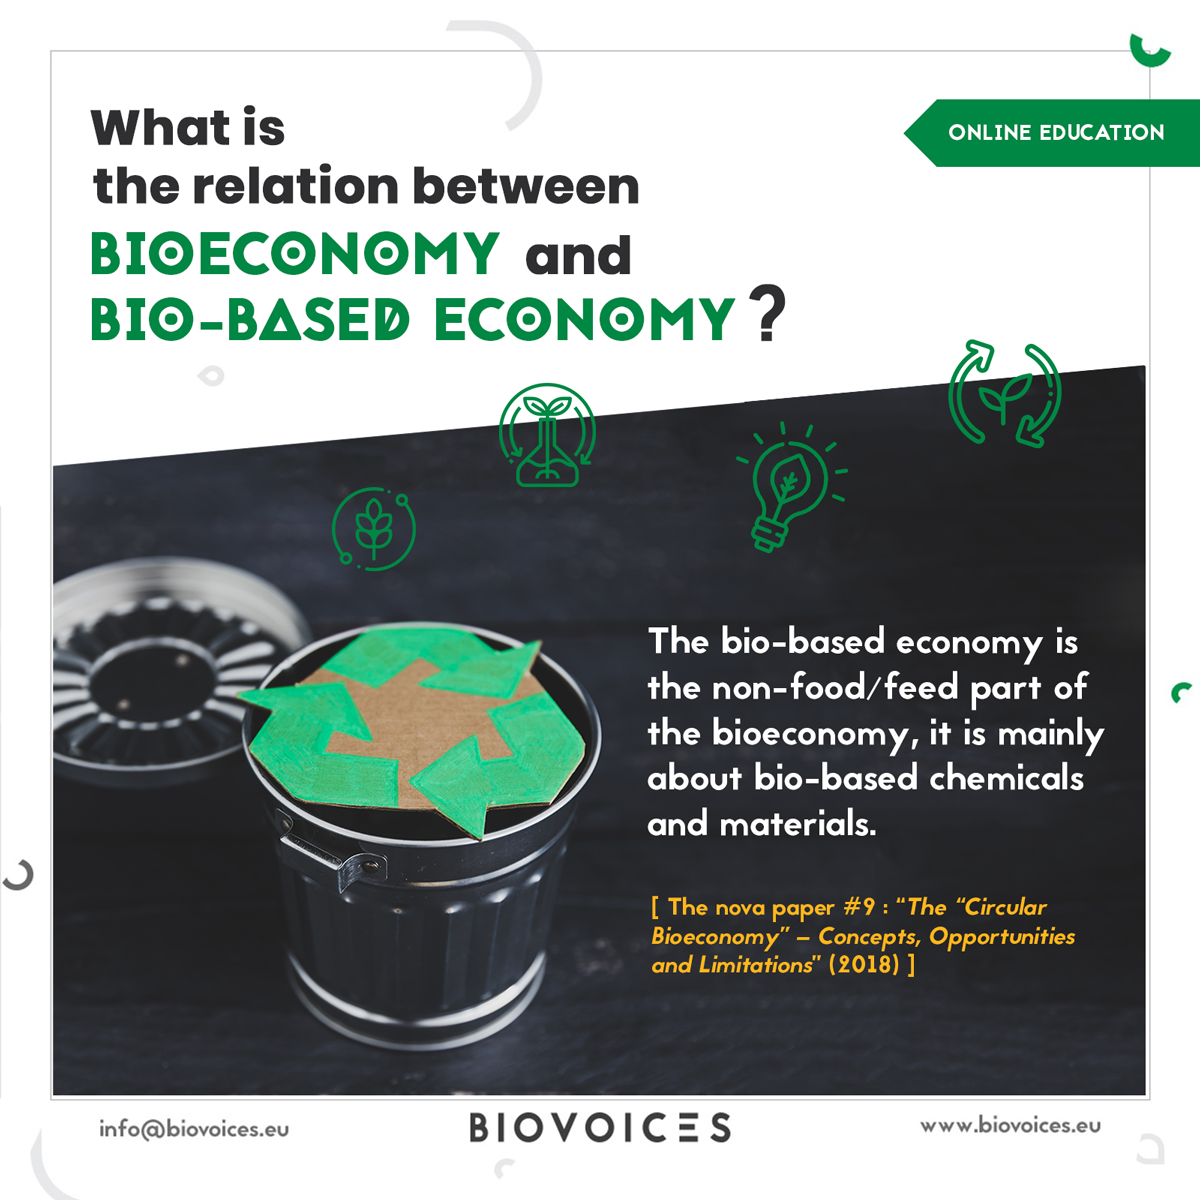 What is the relation between bioeconomy and bio-based economy?